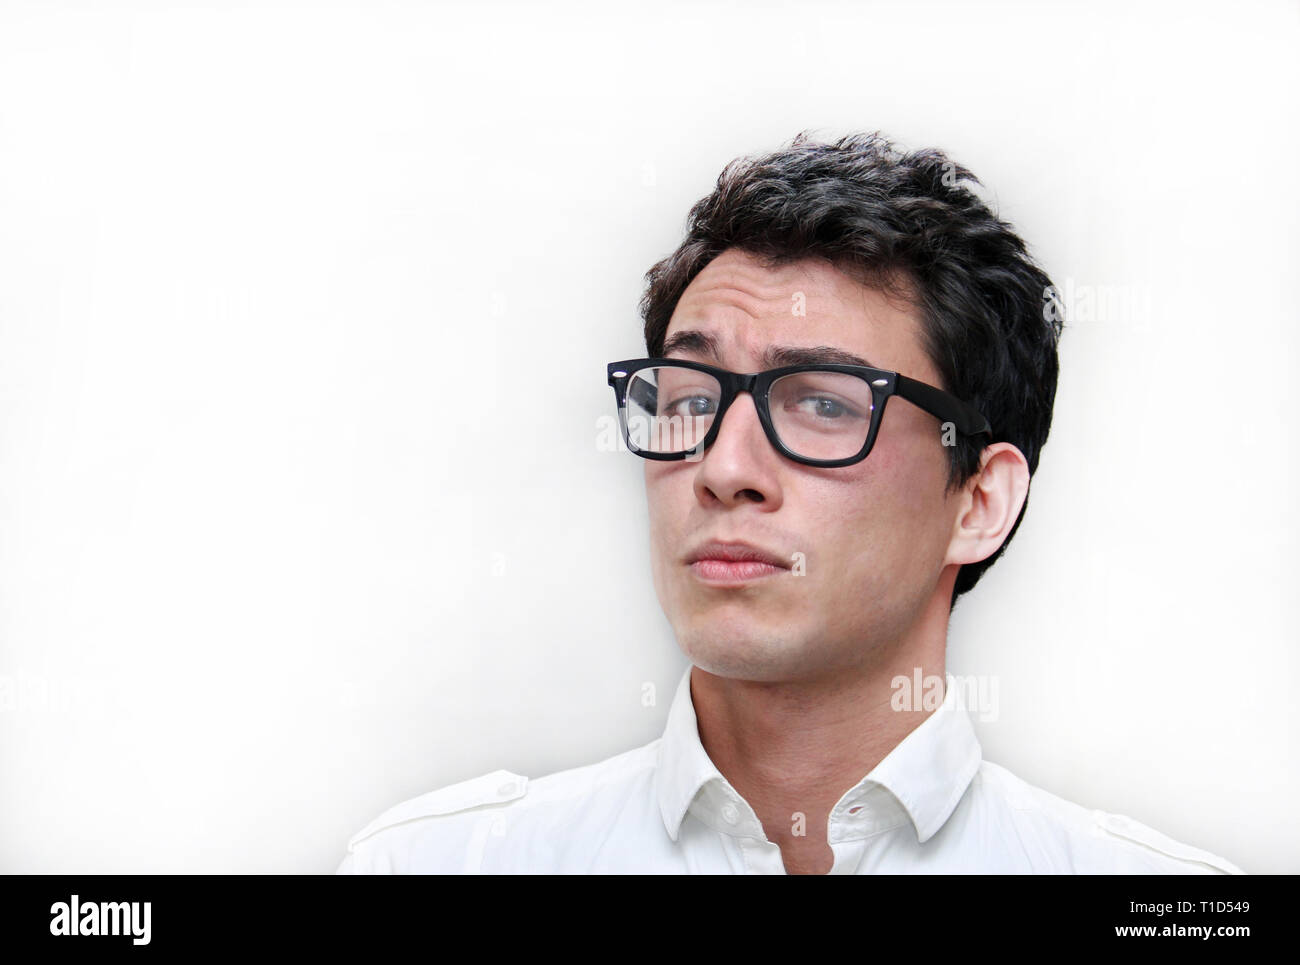 Guy with nerd glasses in front of a white background - Stock Image